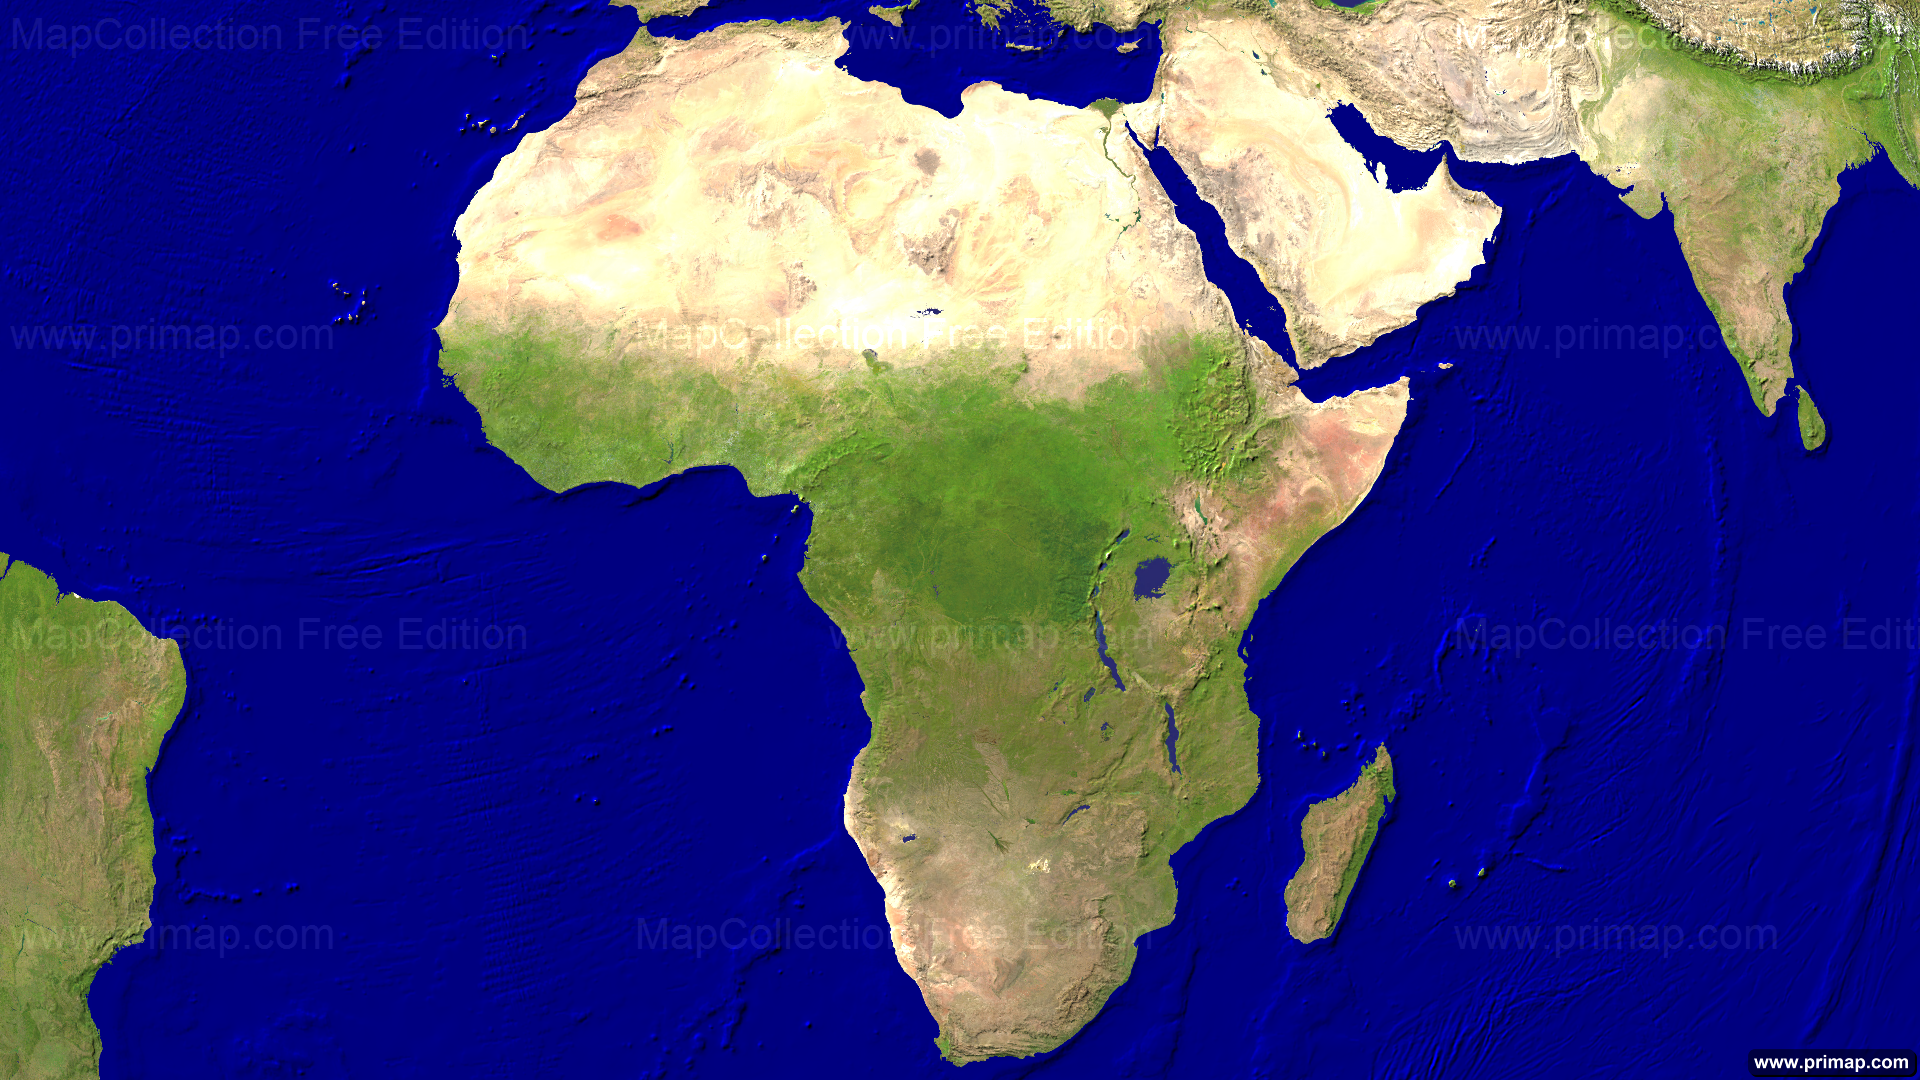 Bank to prepare billion dollar map of africas natural resources world bank to prepare billion dollar map of africas natural resources gumiabroncs